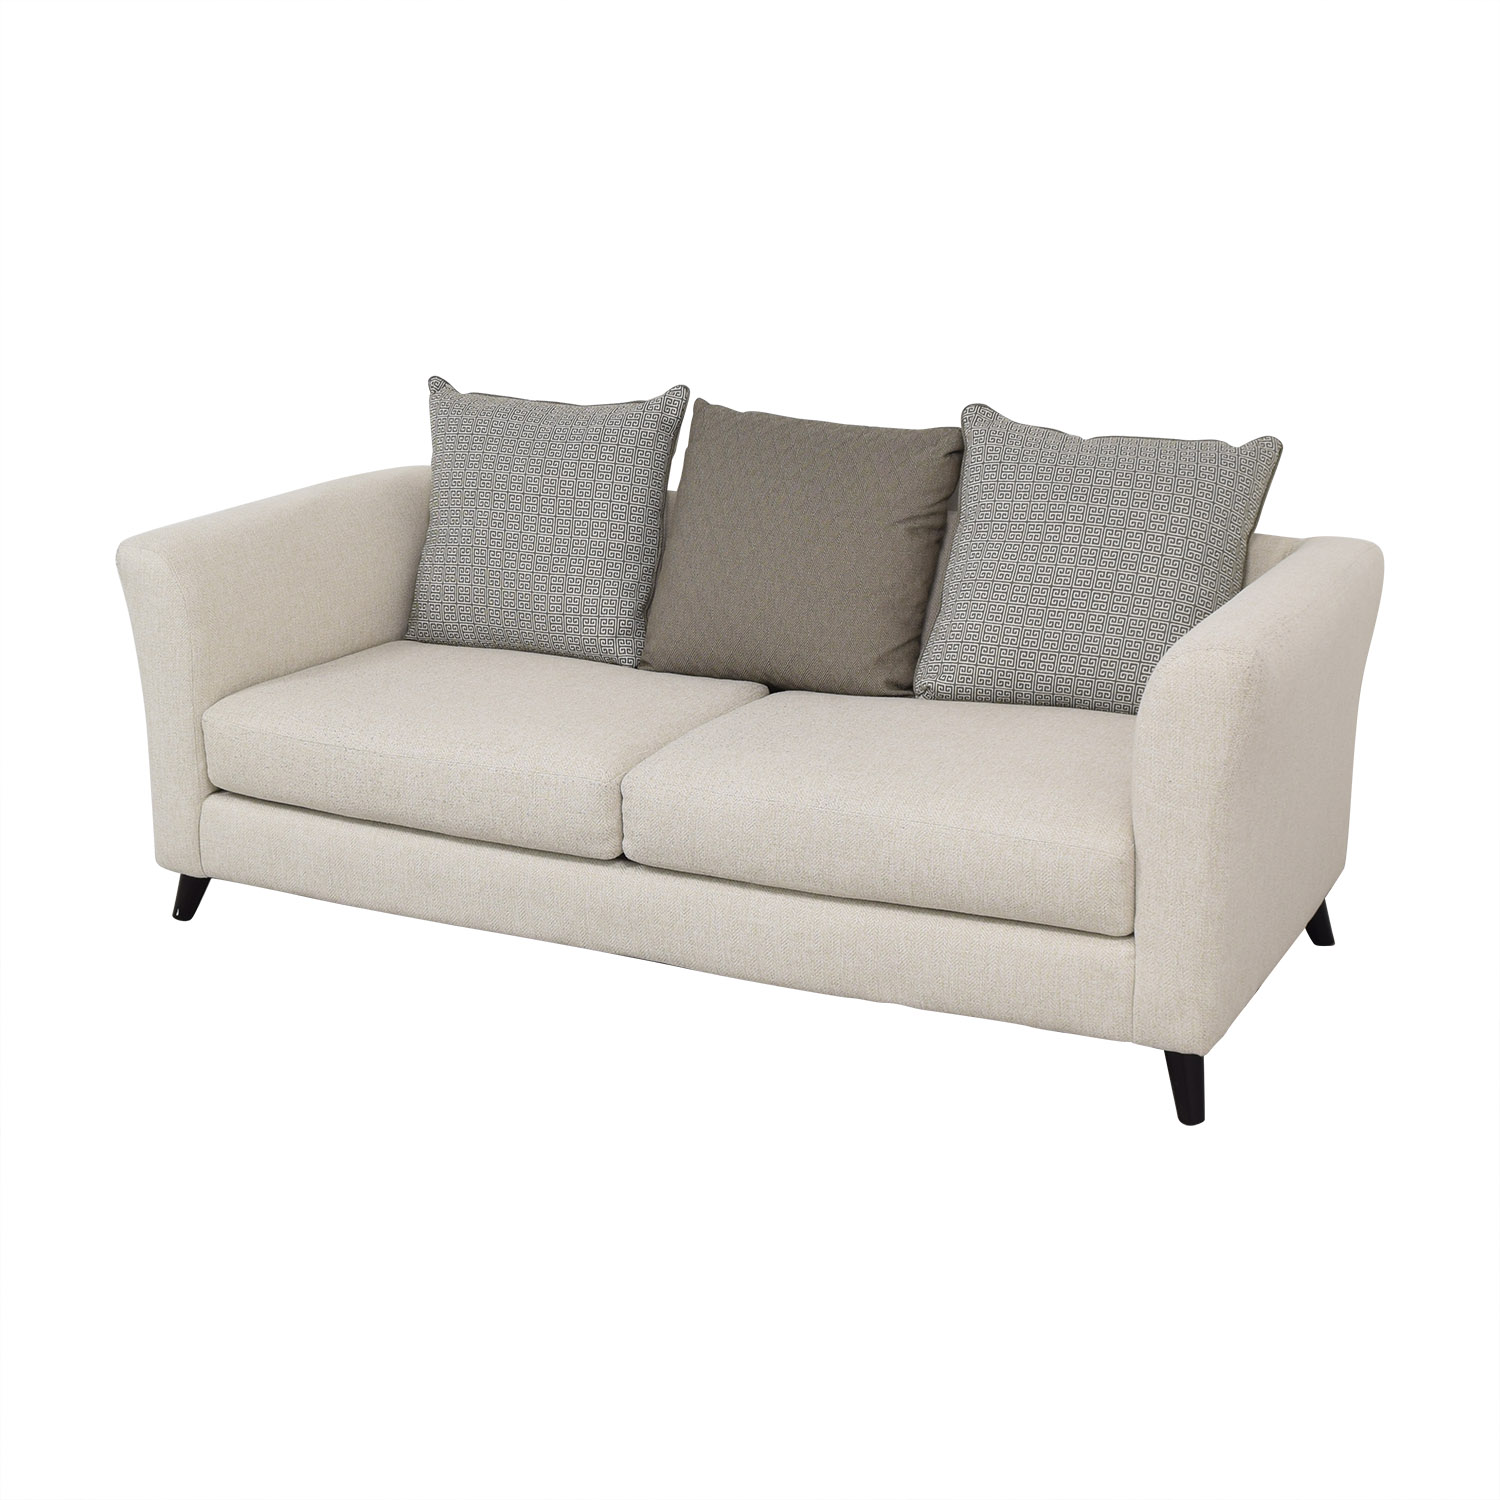 Raymour & Flanigan Raymour & Flanigan Sofa with Pillows second hand